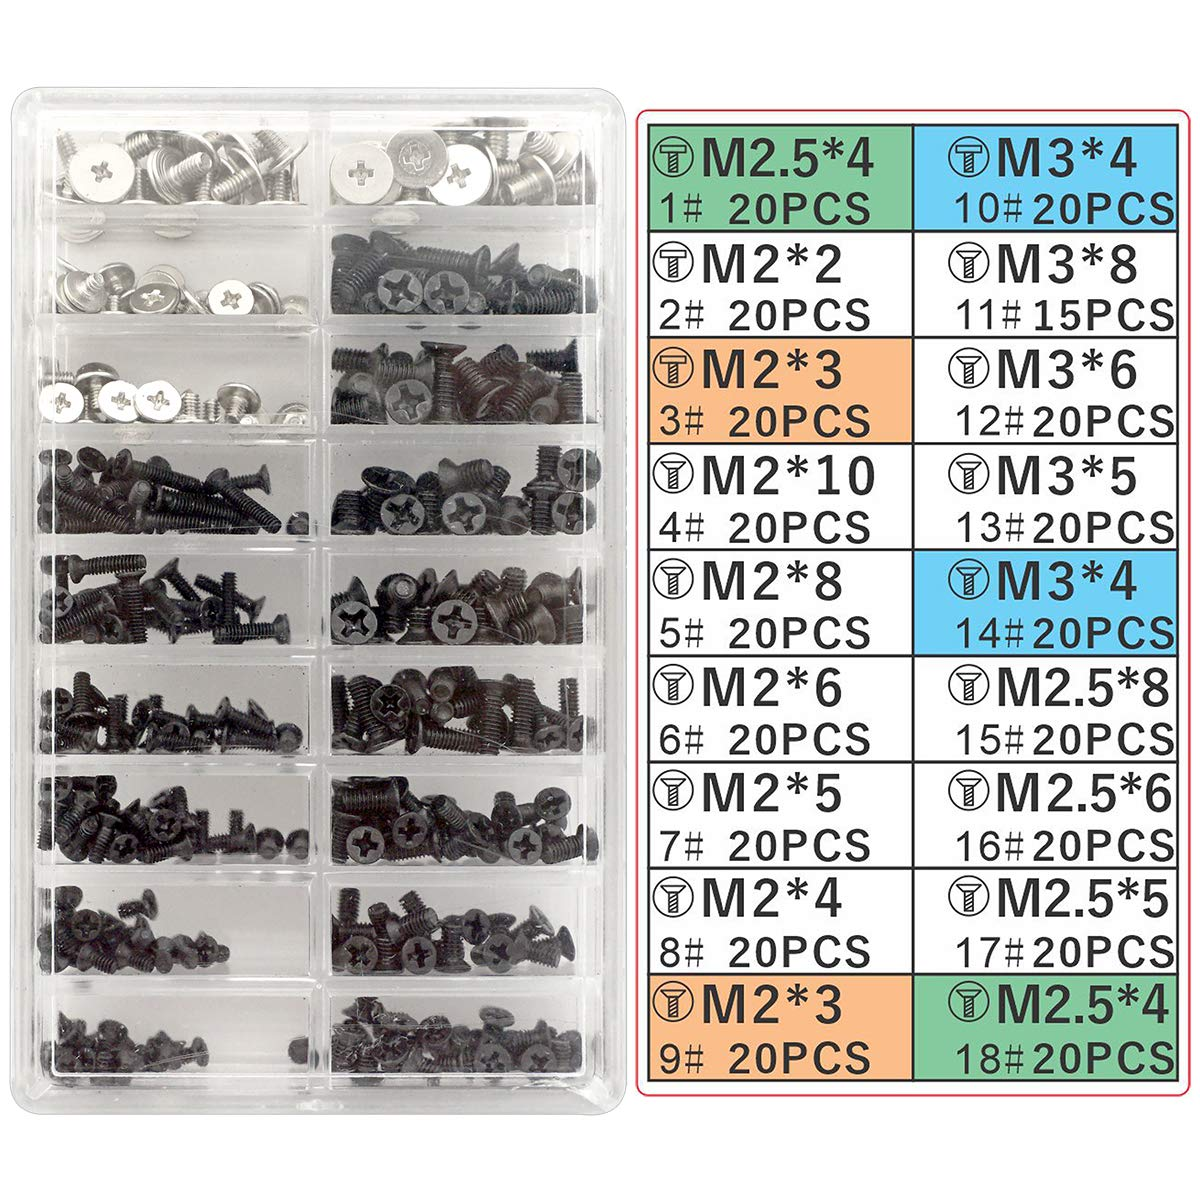 Akuoly Laptop Screw Set PC M2 M3 M2.5 Screw Standoffs for Universal Laptops and Hard Drive Disk M.2 SSD, 355 Pieces